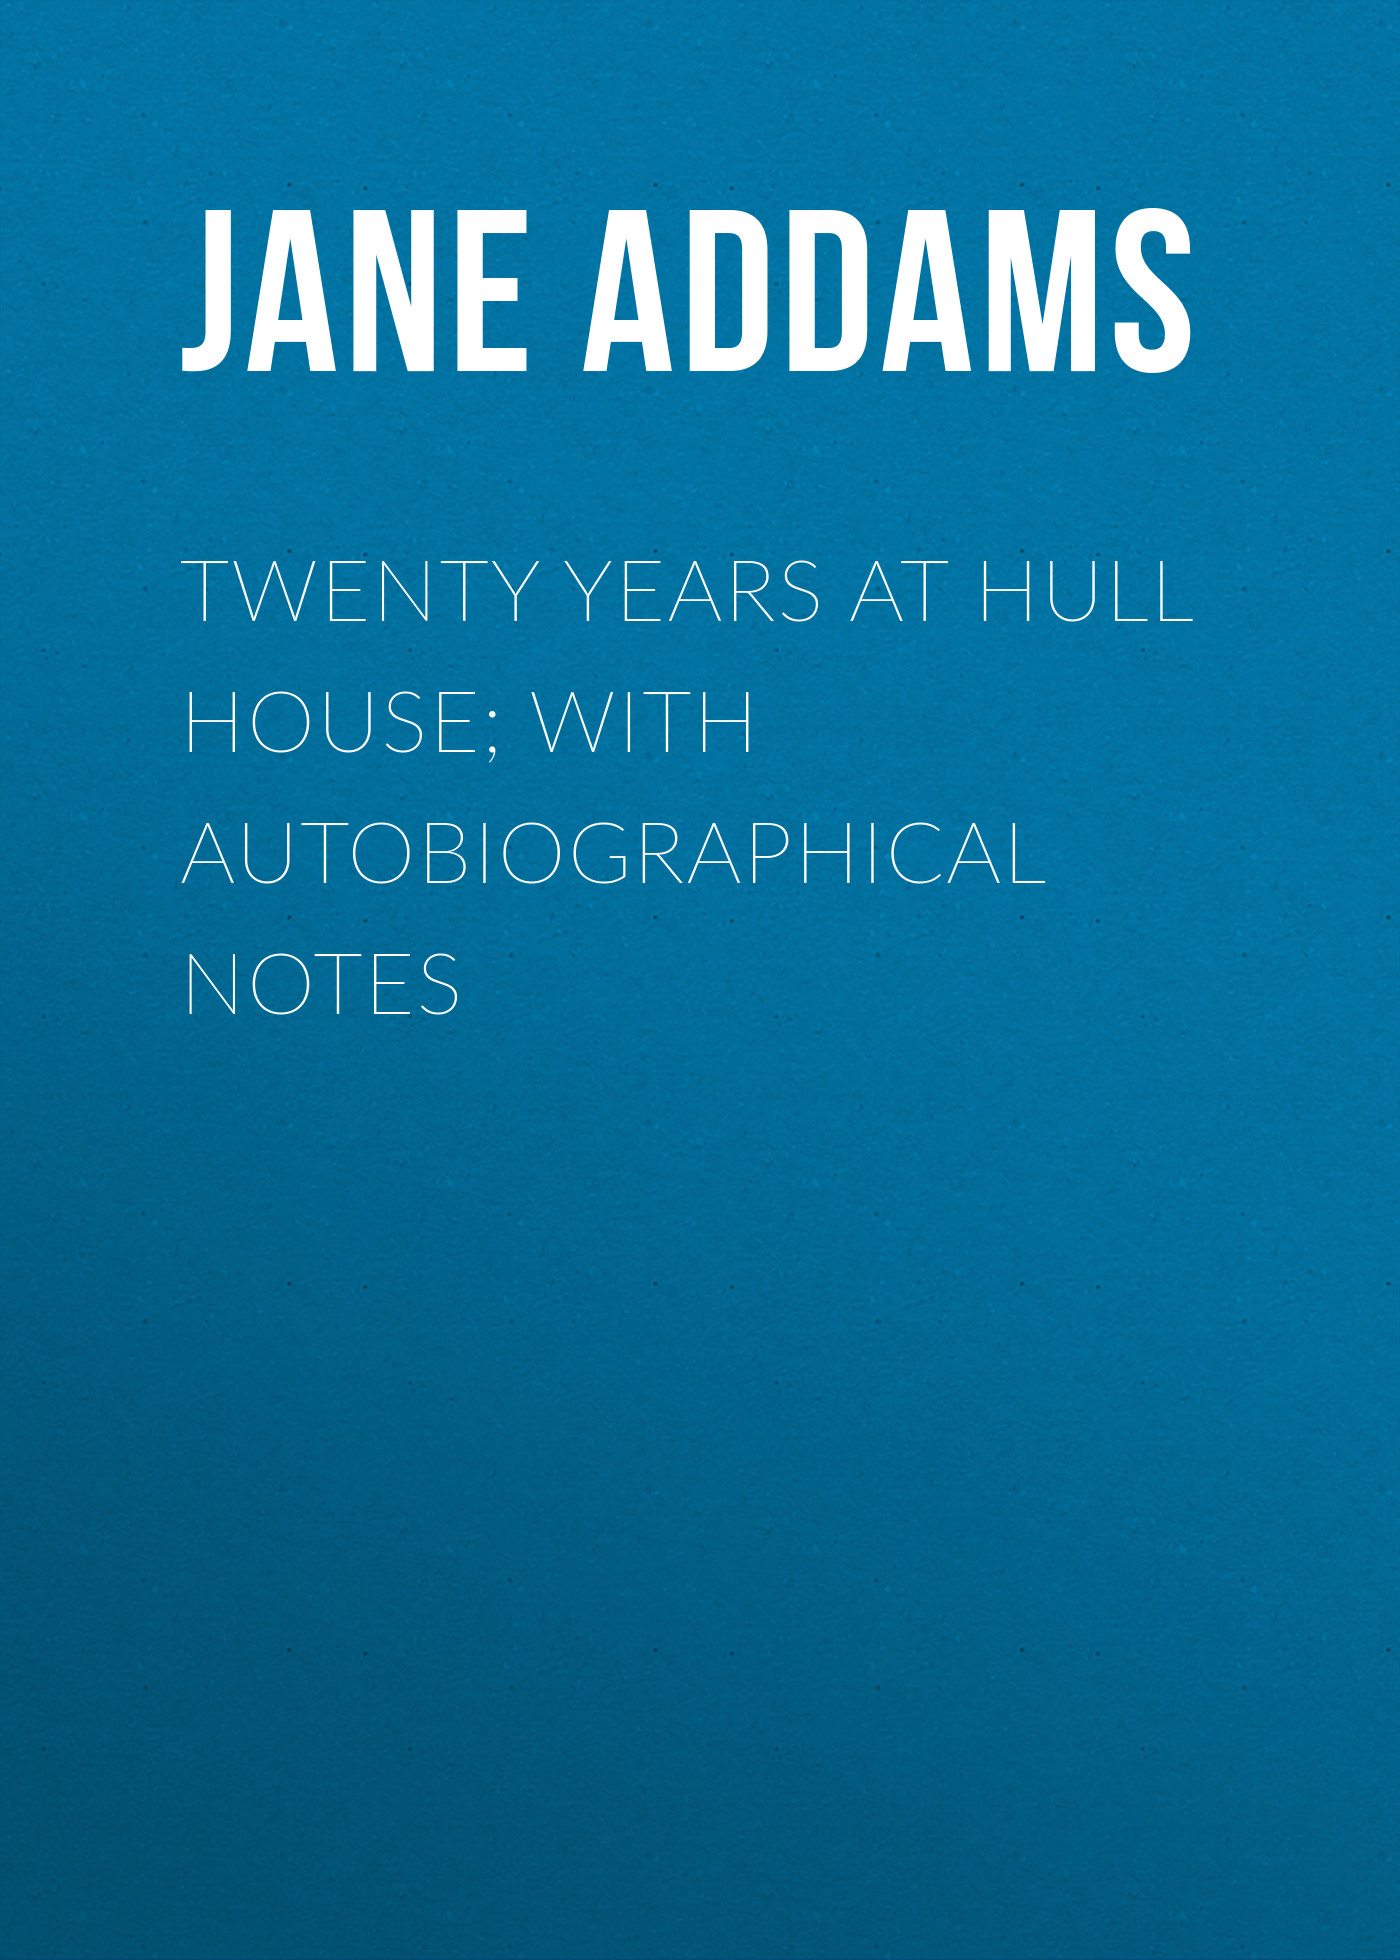 Jane Addams Twenty Years at Hull House; with Autobiographical Notes jane wills vital notes for nurses promoting health